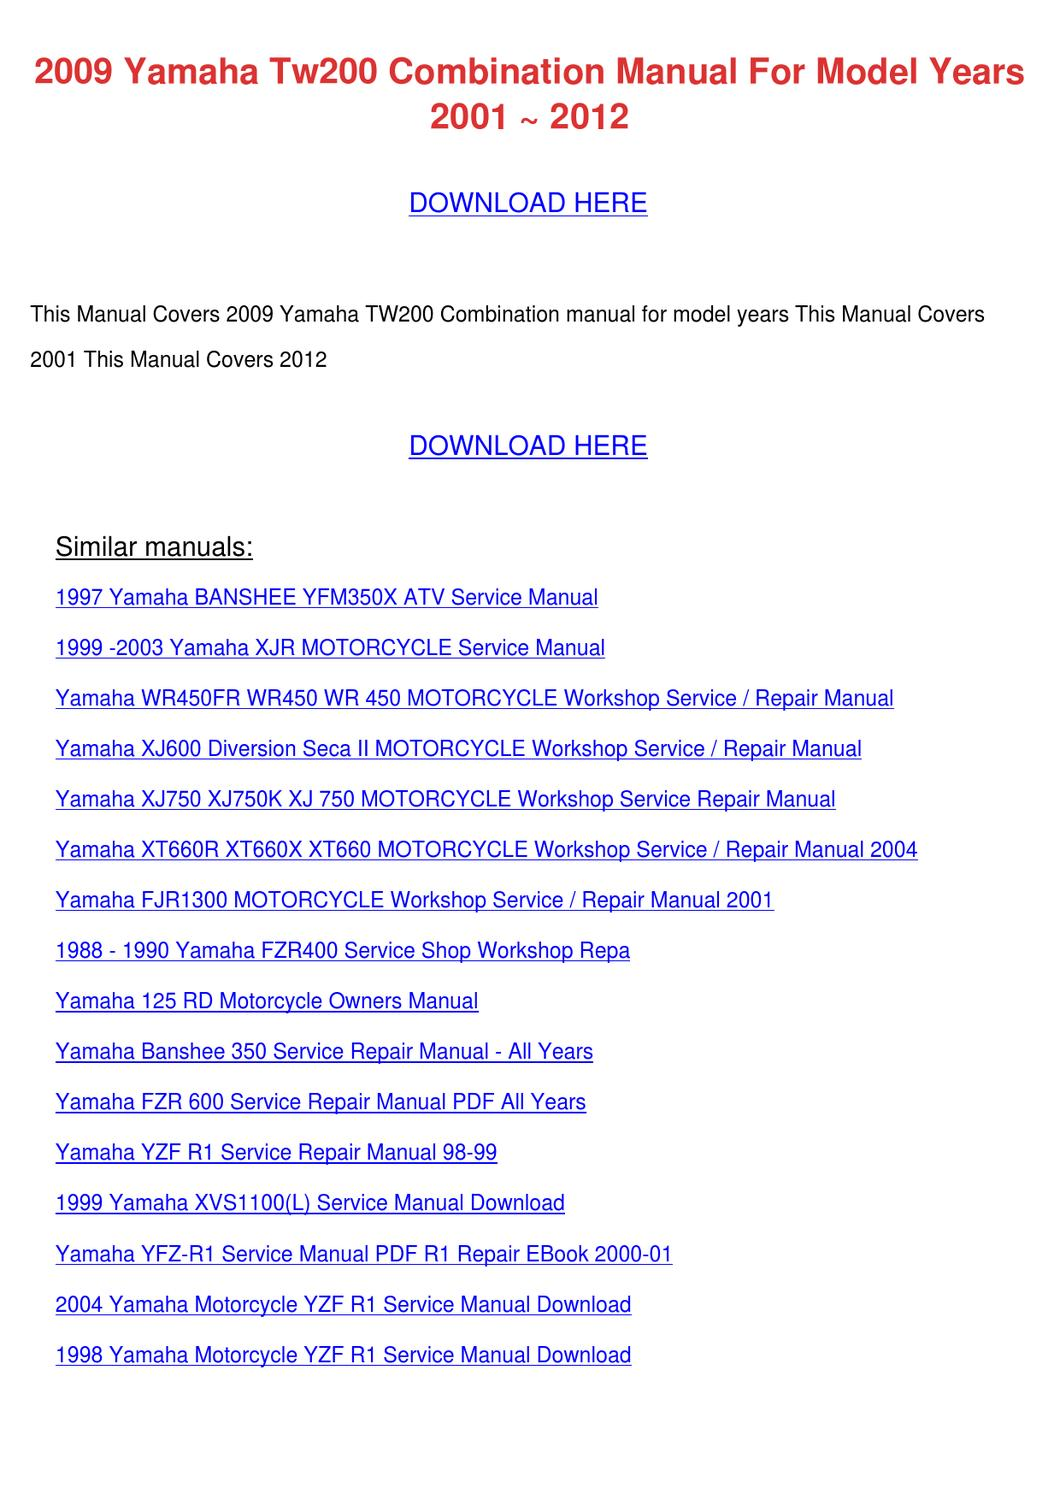 2009 Yamaha Tw200 Combination Manual For Mode By Doris L